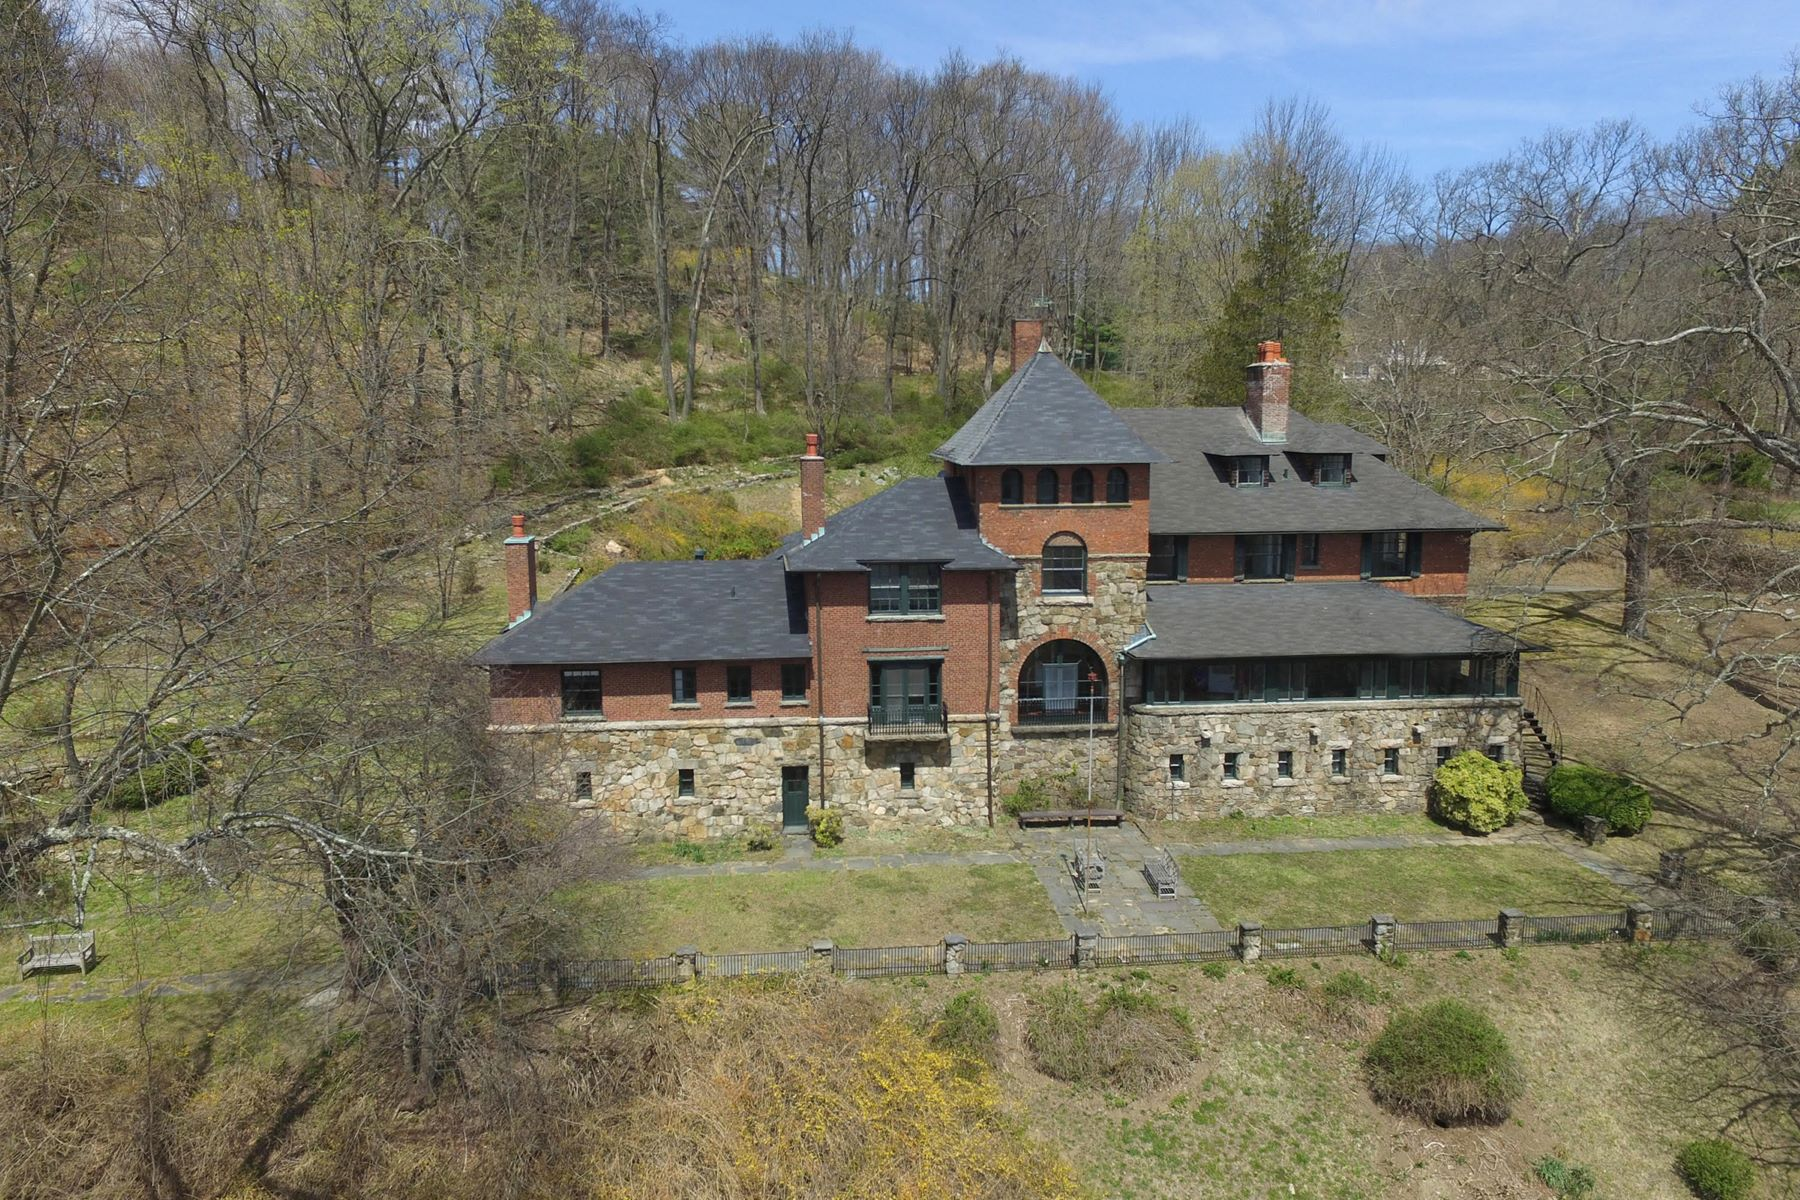 Single Family Home for Sale at Historic TB Baldwin Estate 15 Summit Rd Tuxedo Park, New York 10987 United States